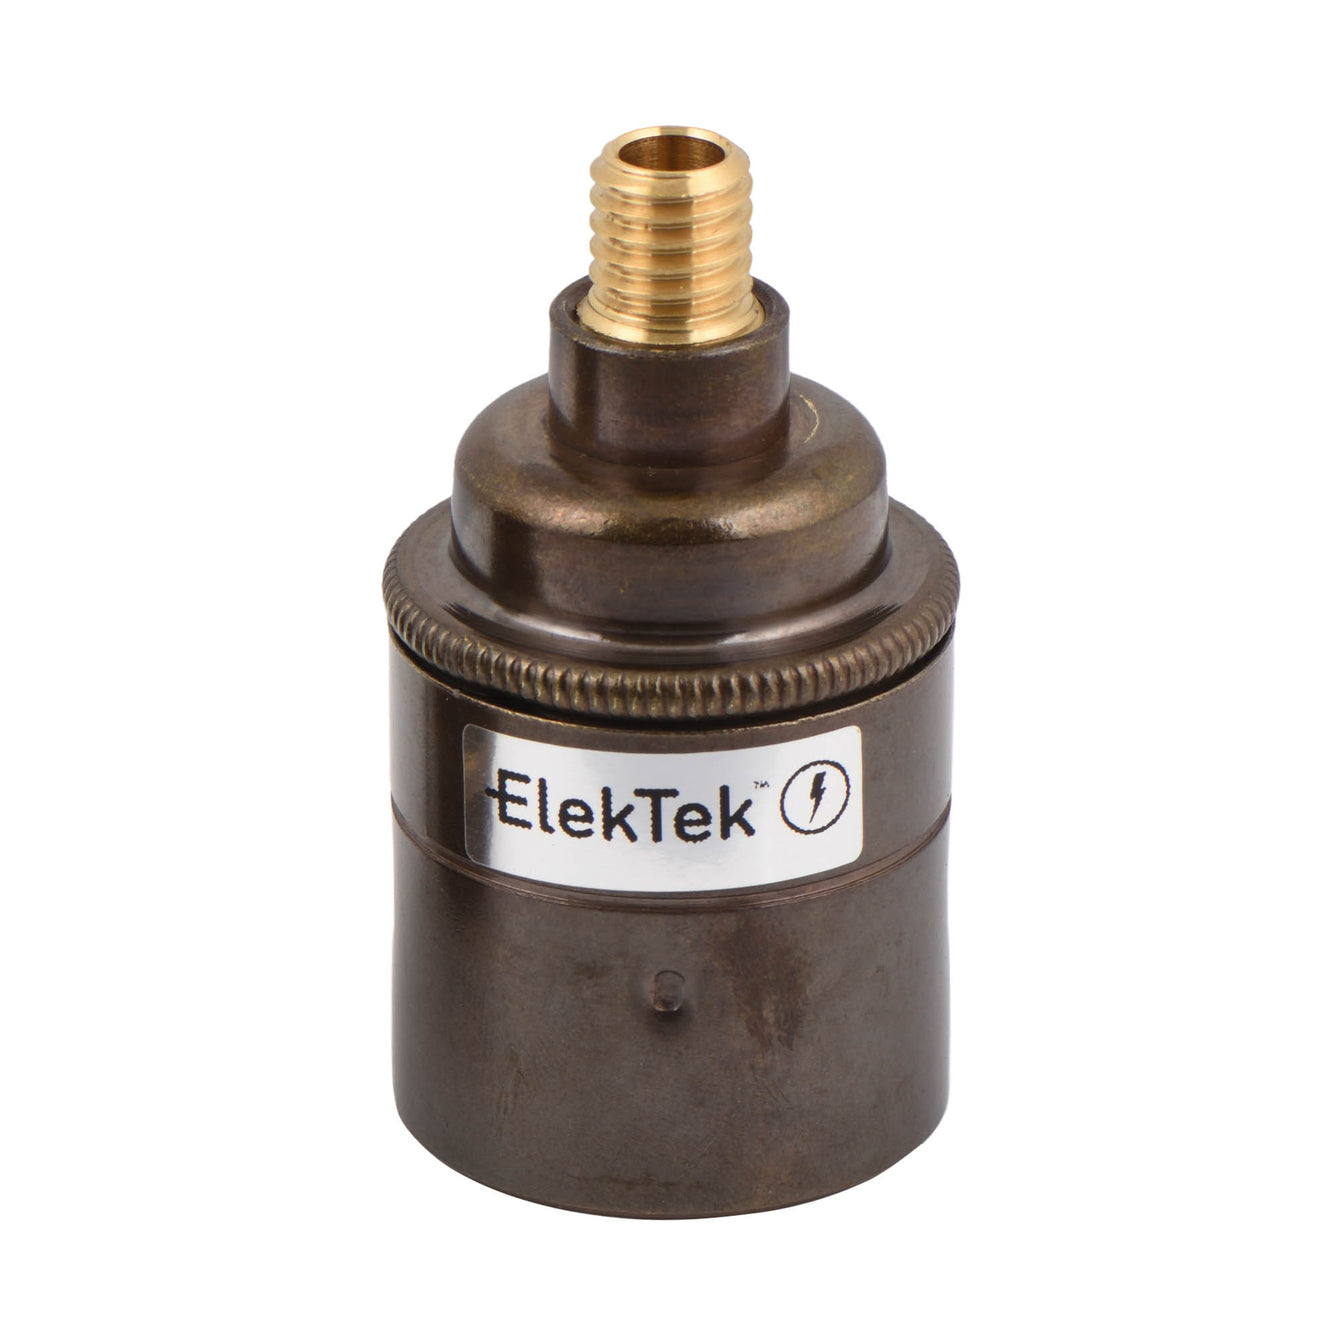 ElekTek ES Edison Screw E27 Lamp Holder Plain Skirt With Wood Nipple Brass - Buy It Better Brushed Antique